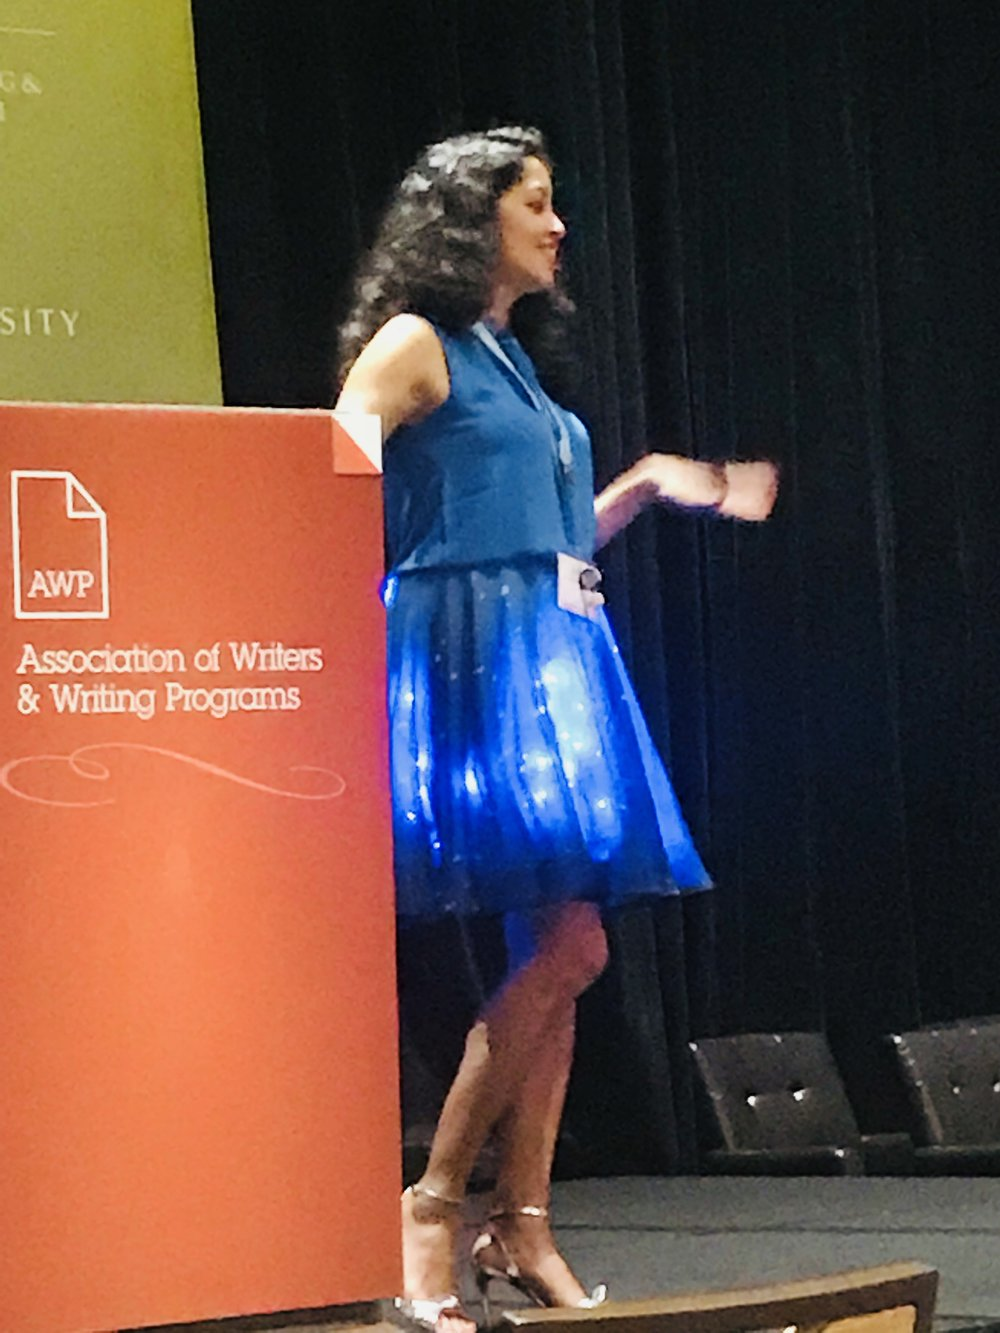 "wearewomenwriting ""Joy is an act of resistance"" thank you for your  #poetry reading today at  #awp18  Aimee Nezhukumatathil  #womenwriters"